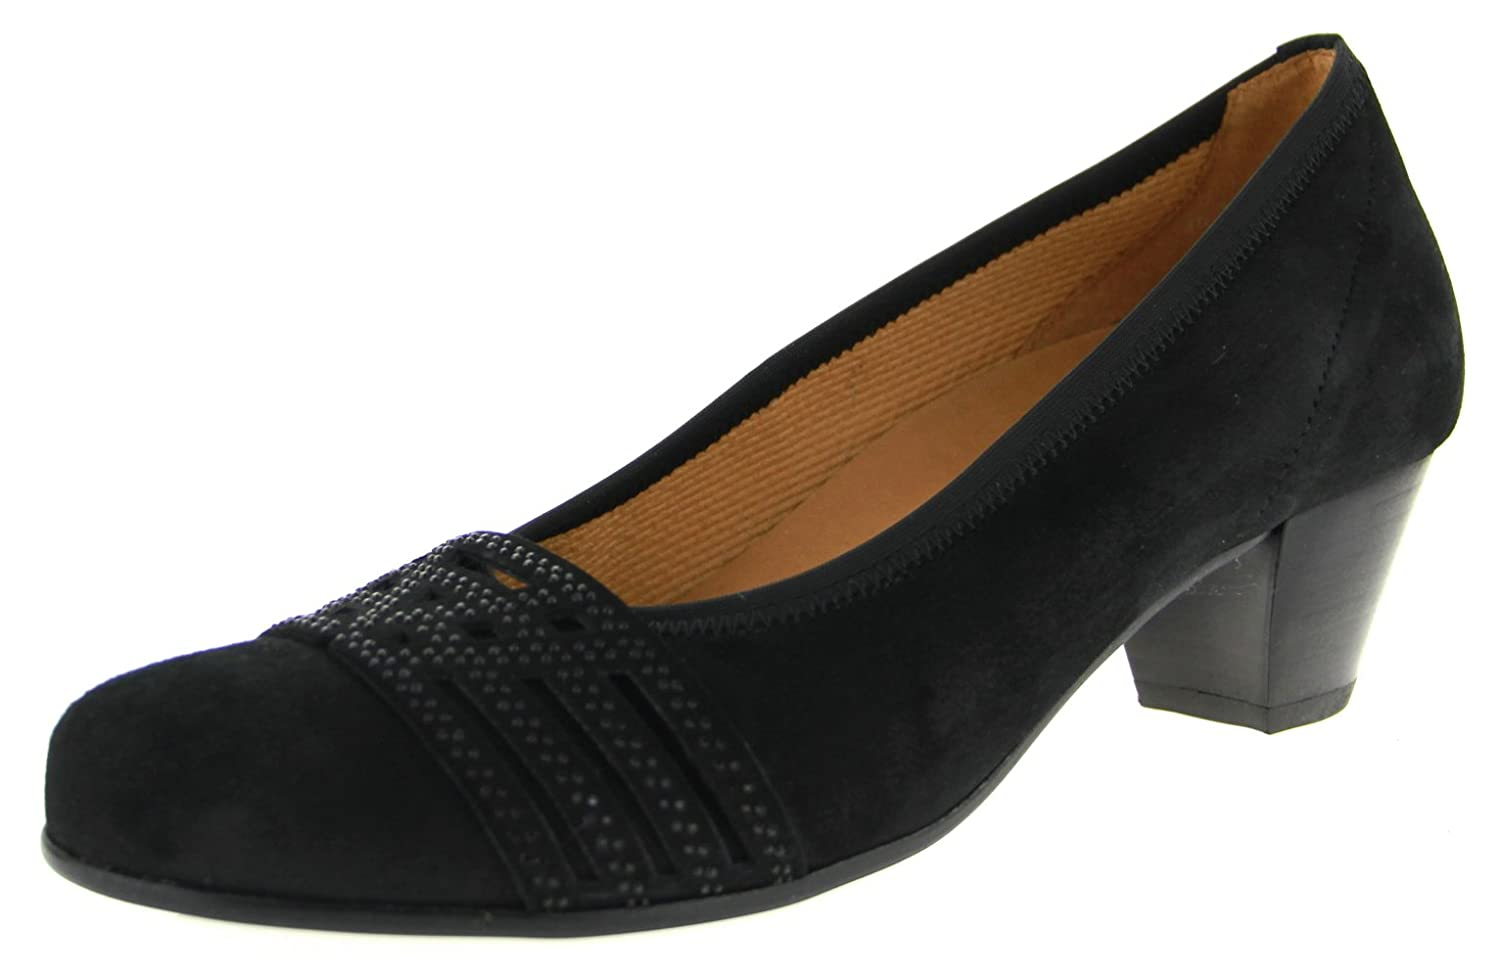 Gabor Pumps Comfort Damenschuhe 46.153 Damen Pumps Gabor 944b5b